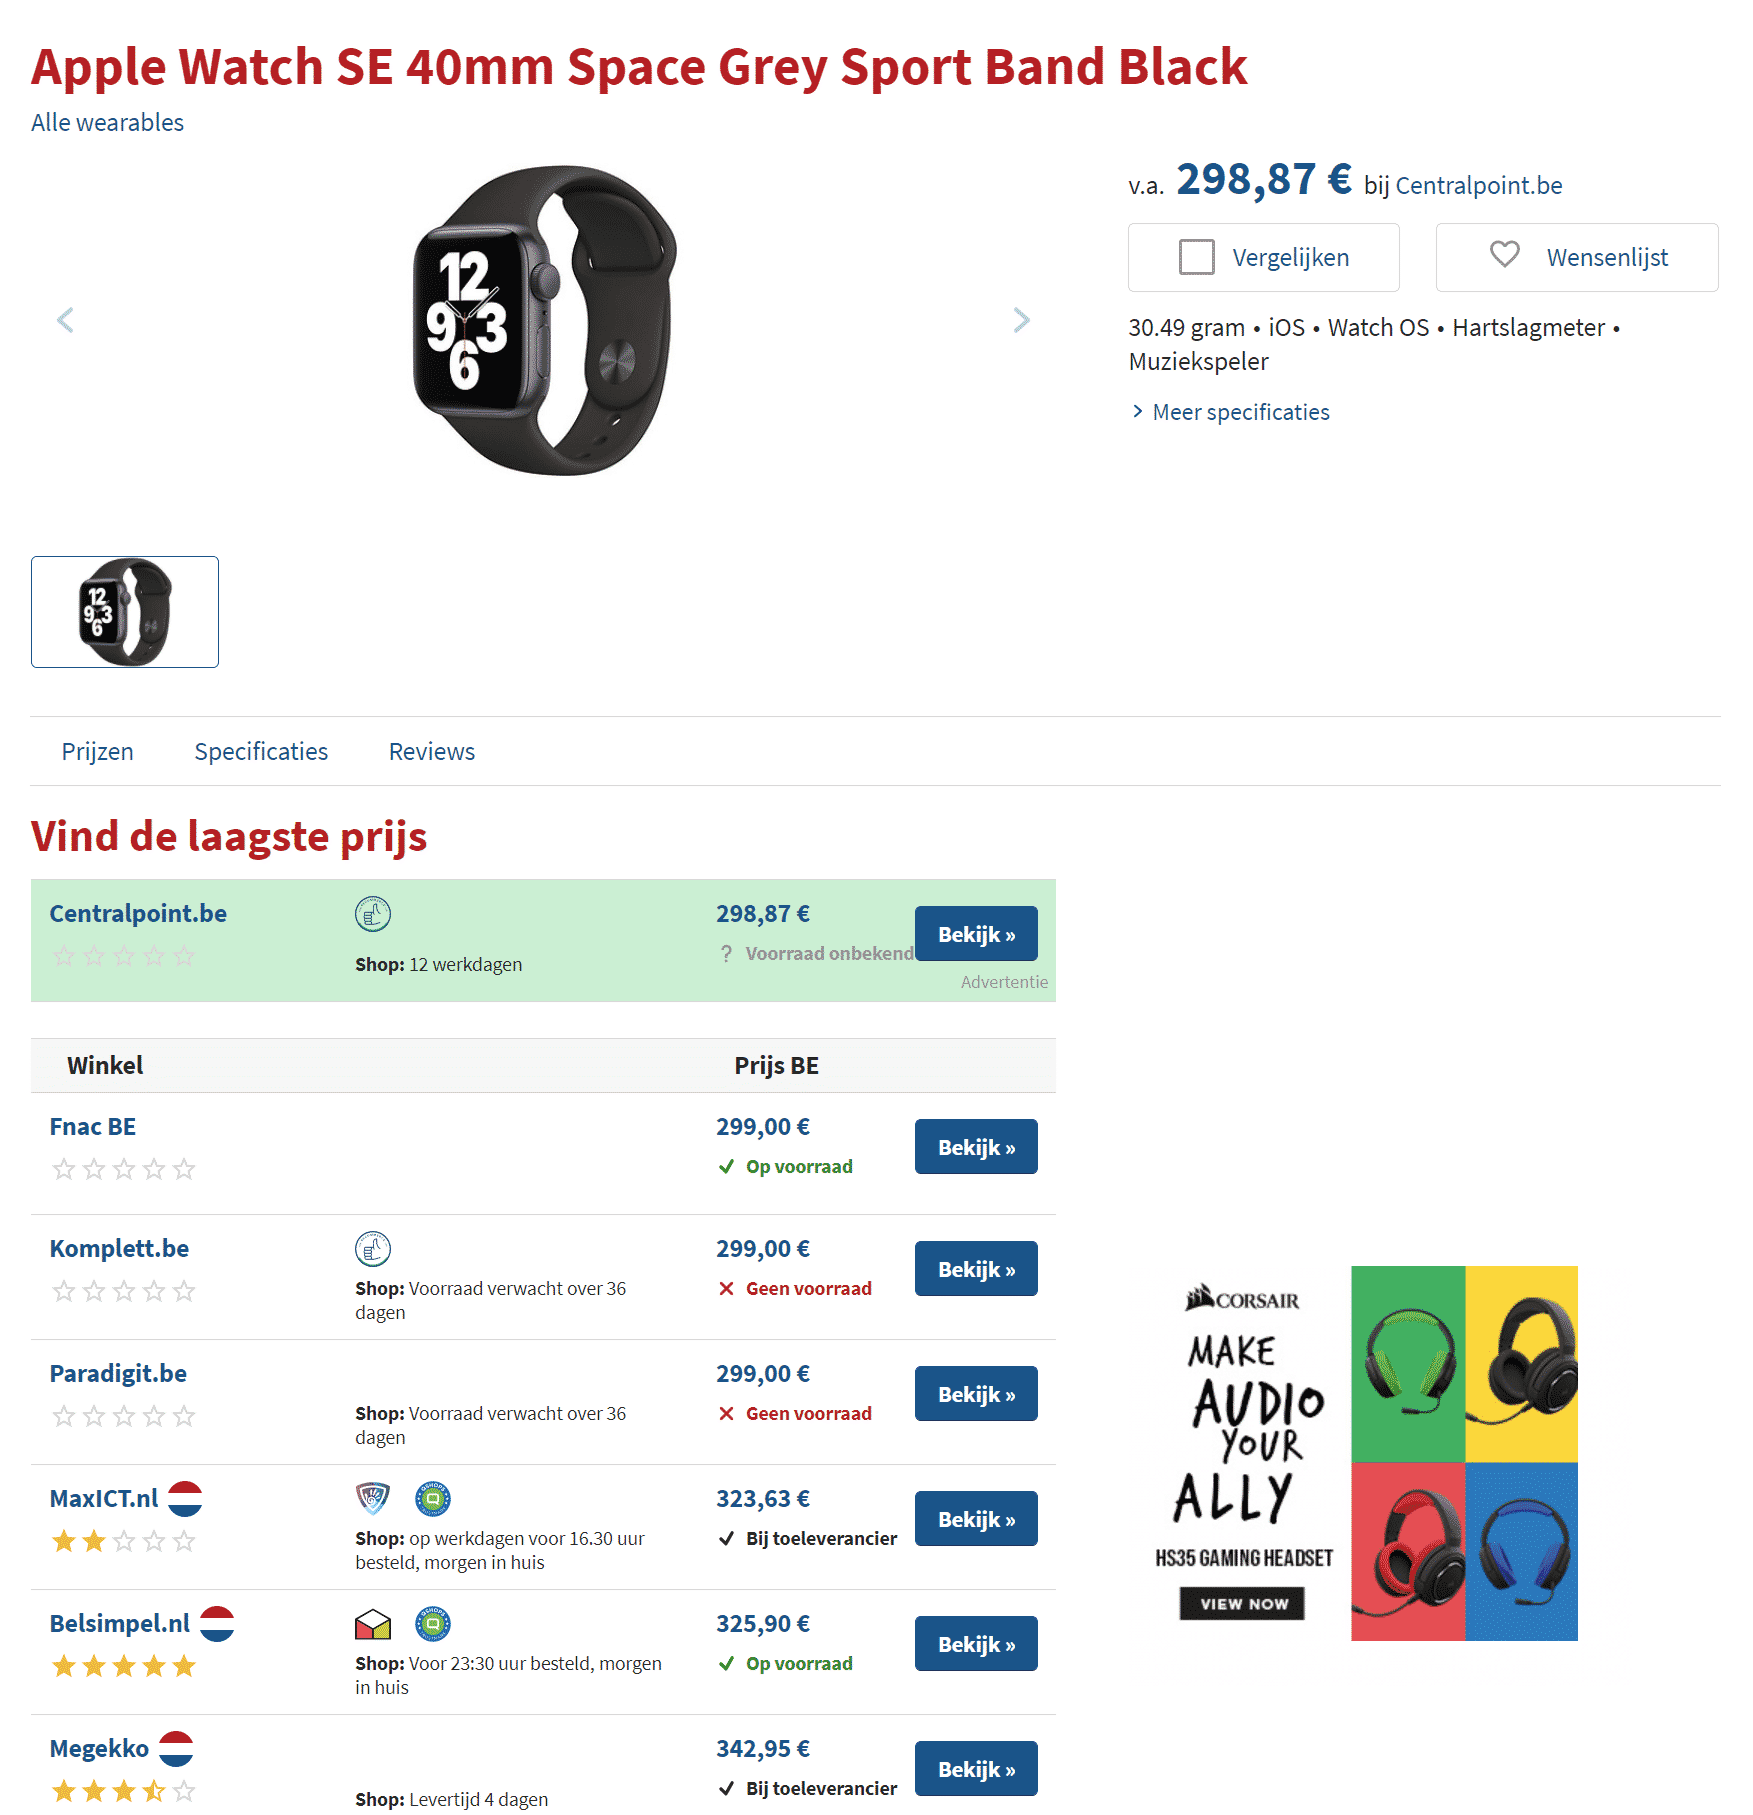 Price Comparison Of Apple Watch On Hardware.info